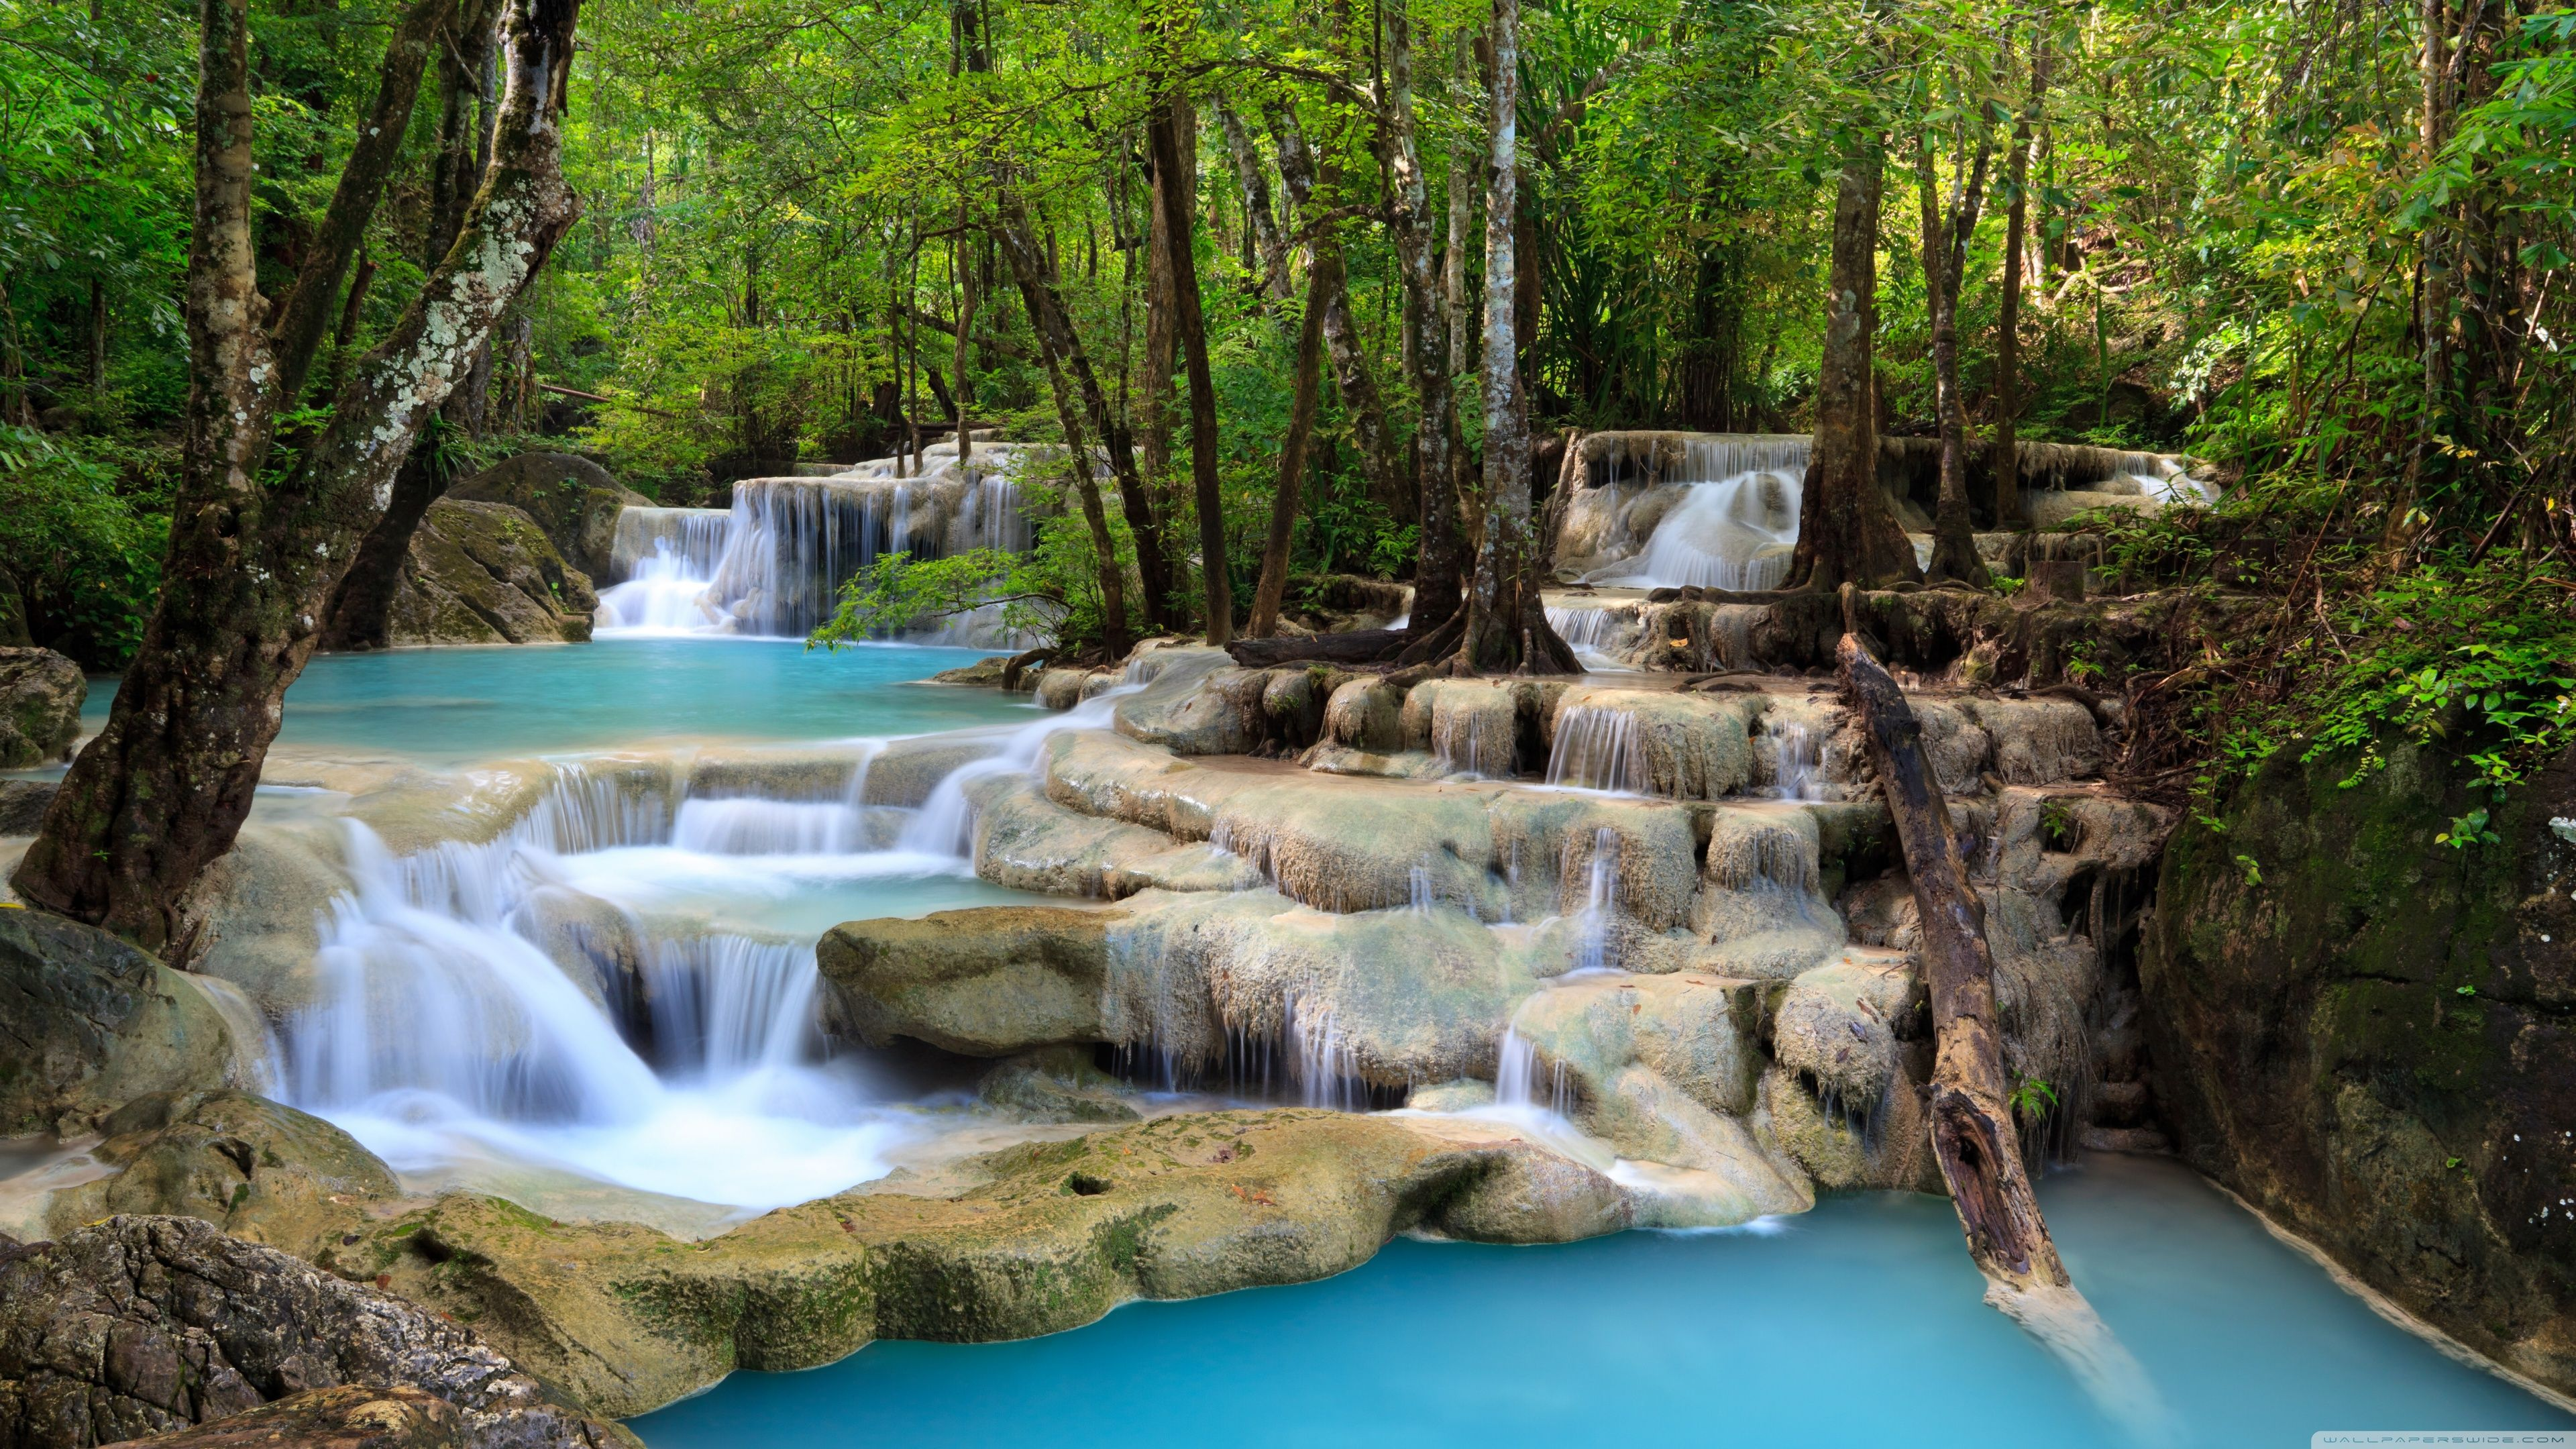 Tropical Waterfall Hd Desktop Wallpaper Widescreen High Waterfall Scenery Waterfall Wallpaper Waterfall